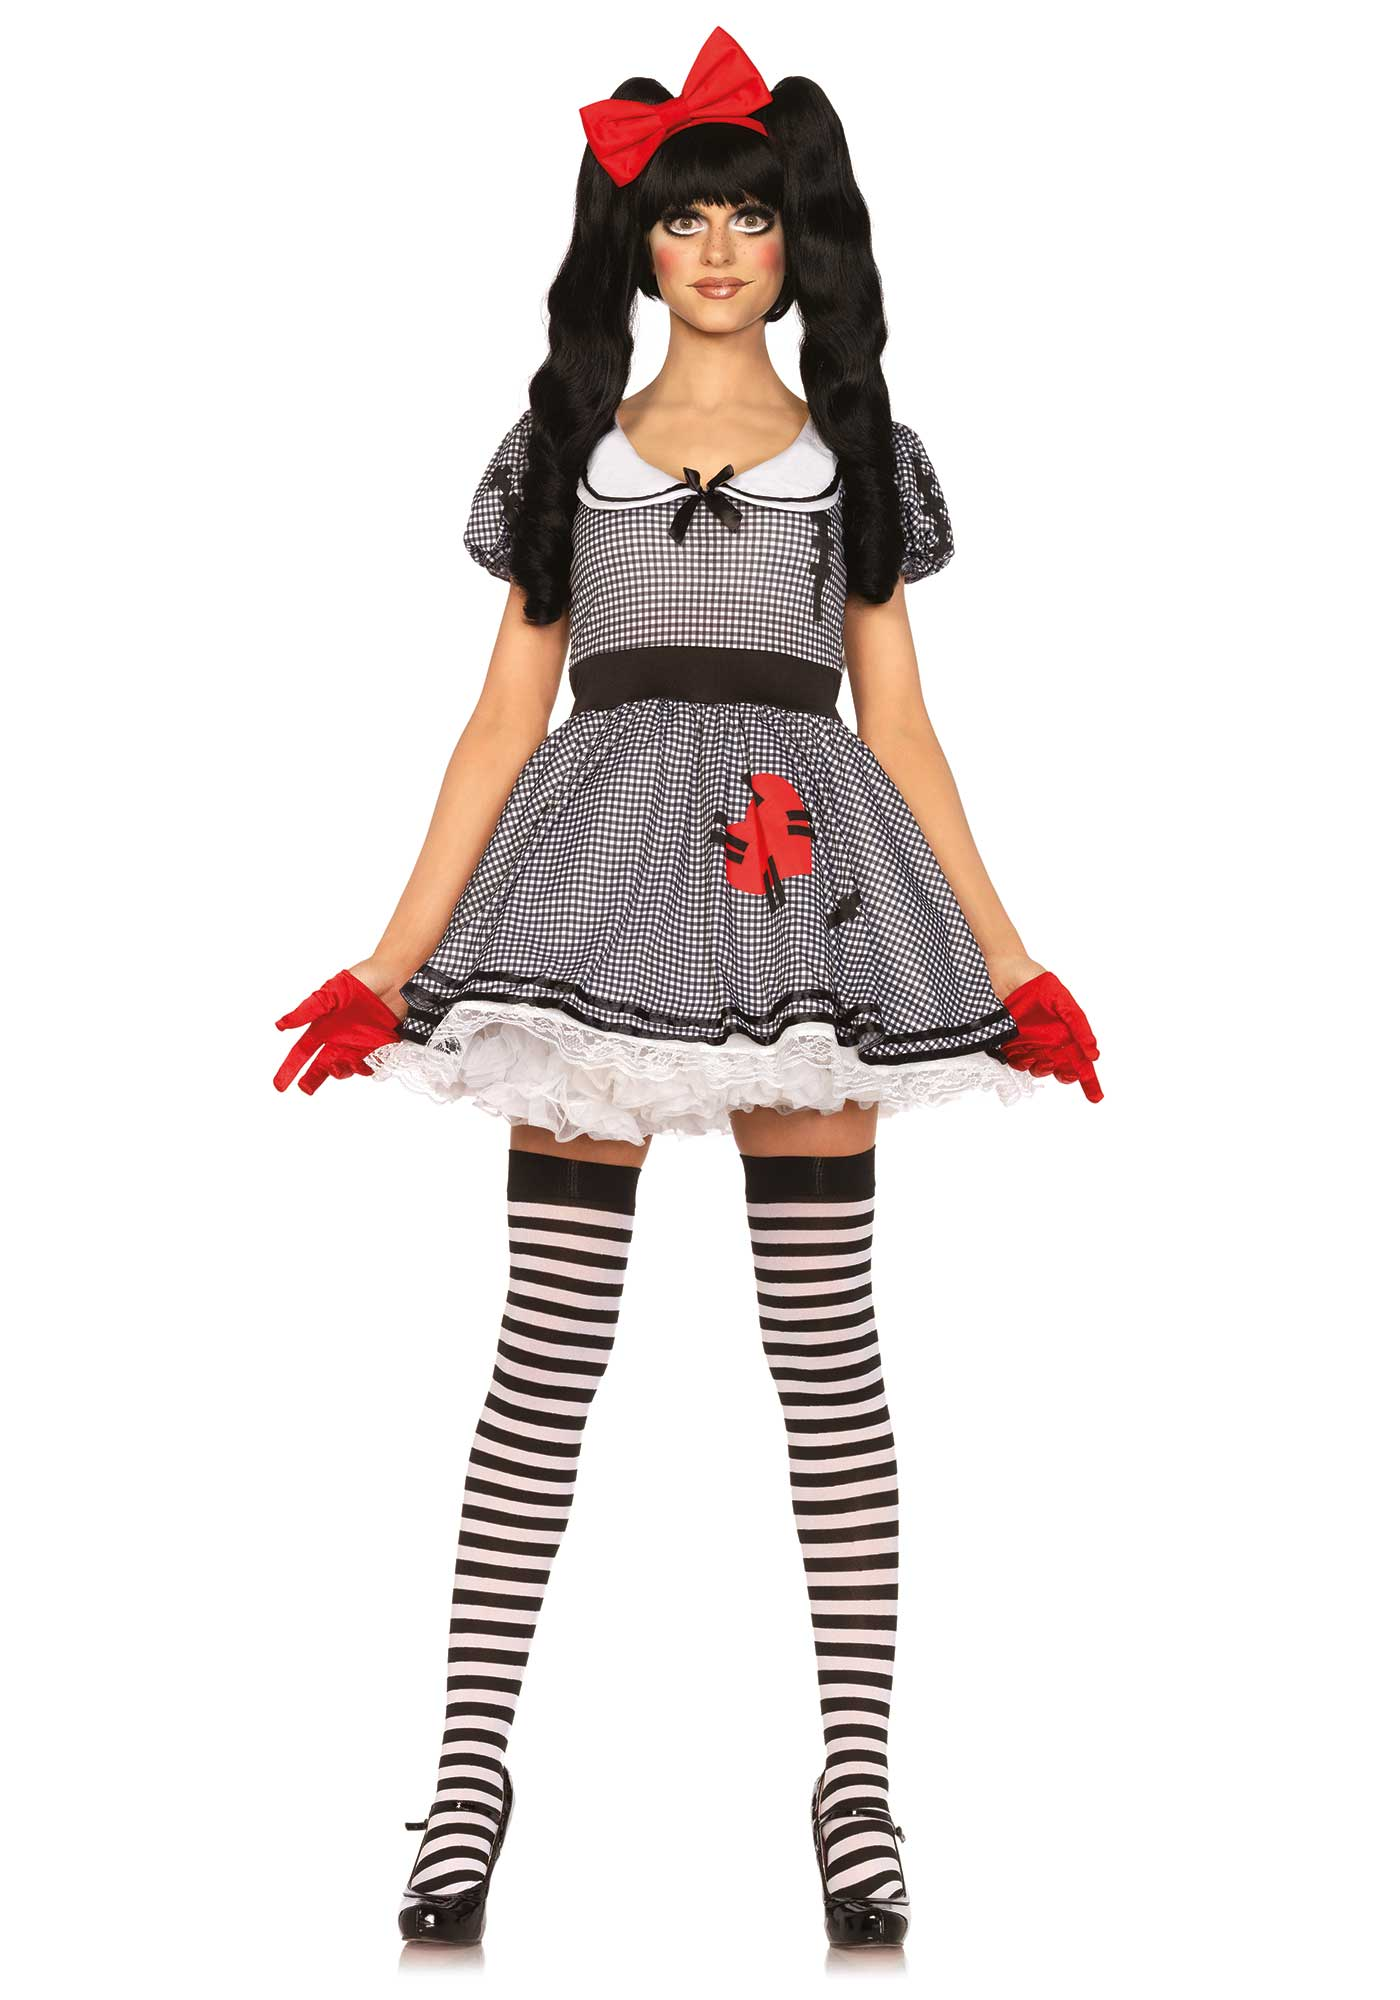 donna Wind Toy Doll Costume Bianco Rosso Doll da Nero Up rECoQedxWB